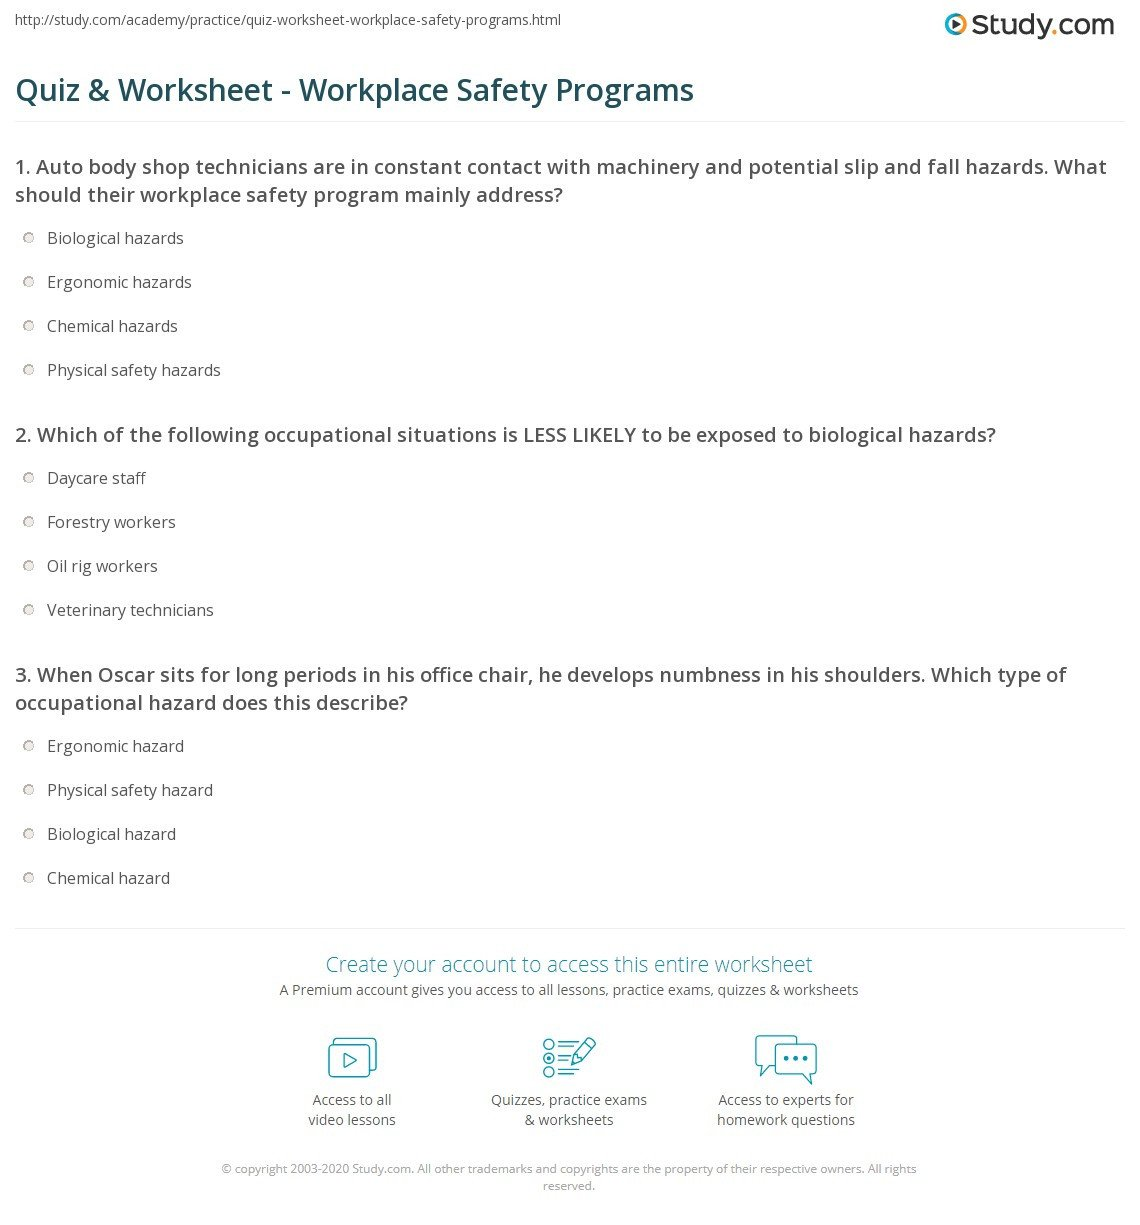 quiz worksheet workplace safety programs study worksheets for students multiplying whole